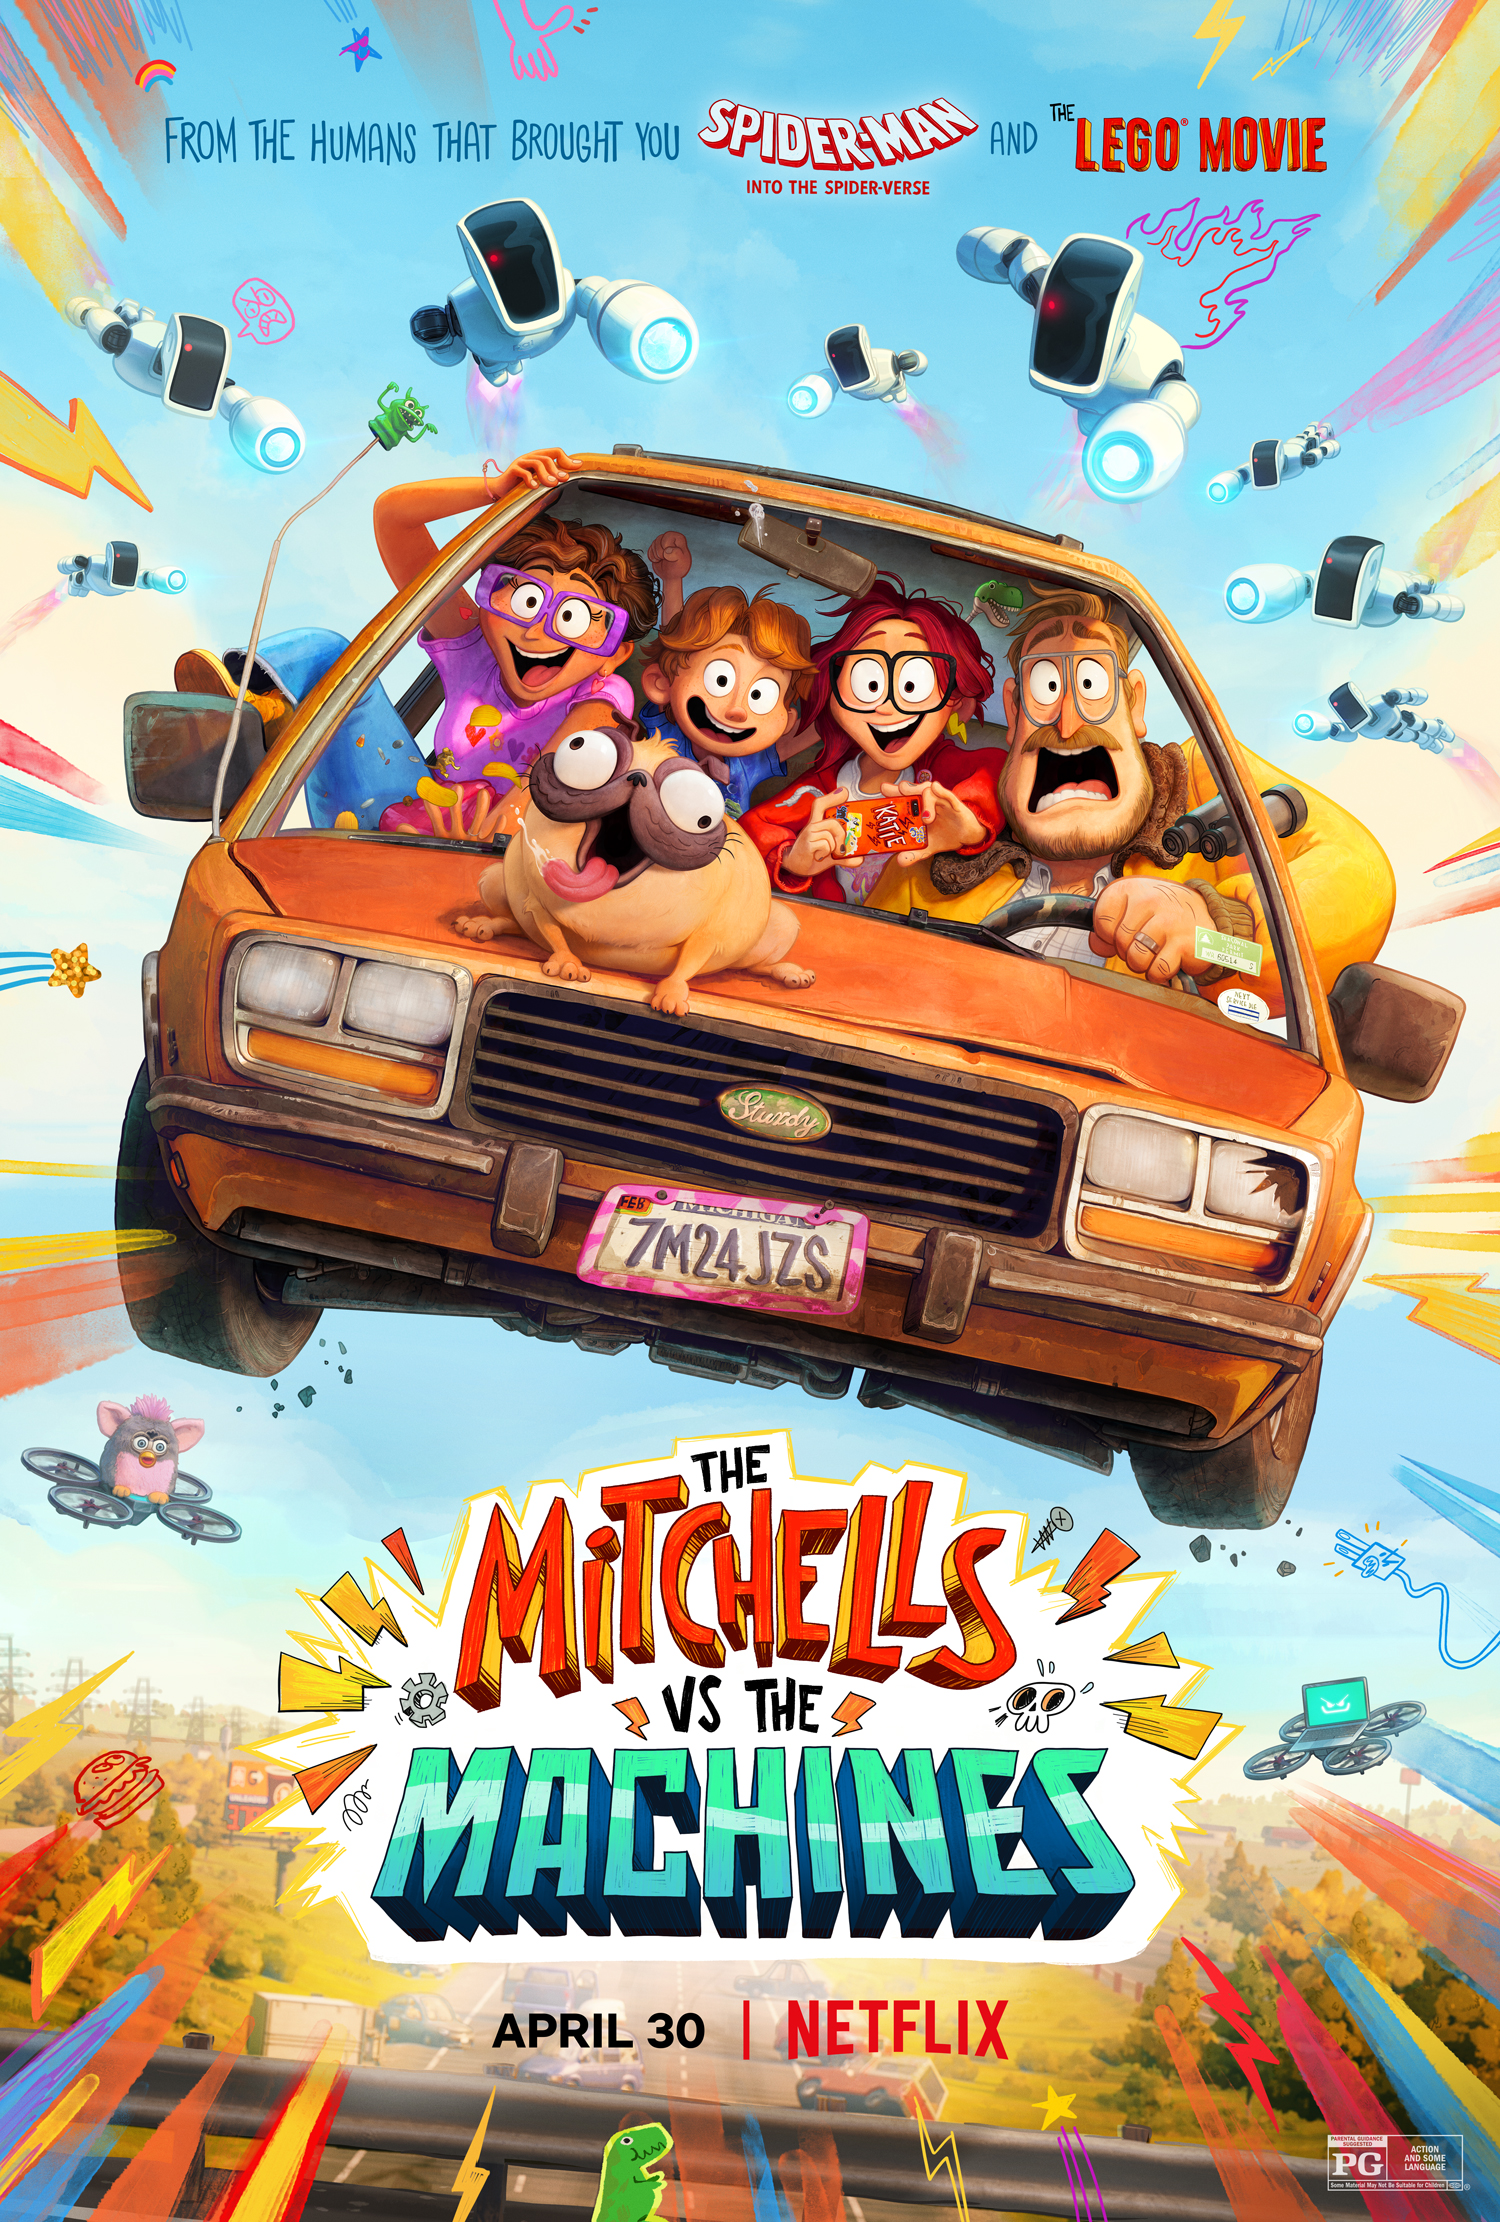 The Mitchells vs The Machines Parents Guide + Movie Review